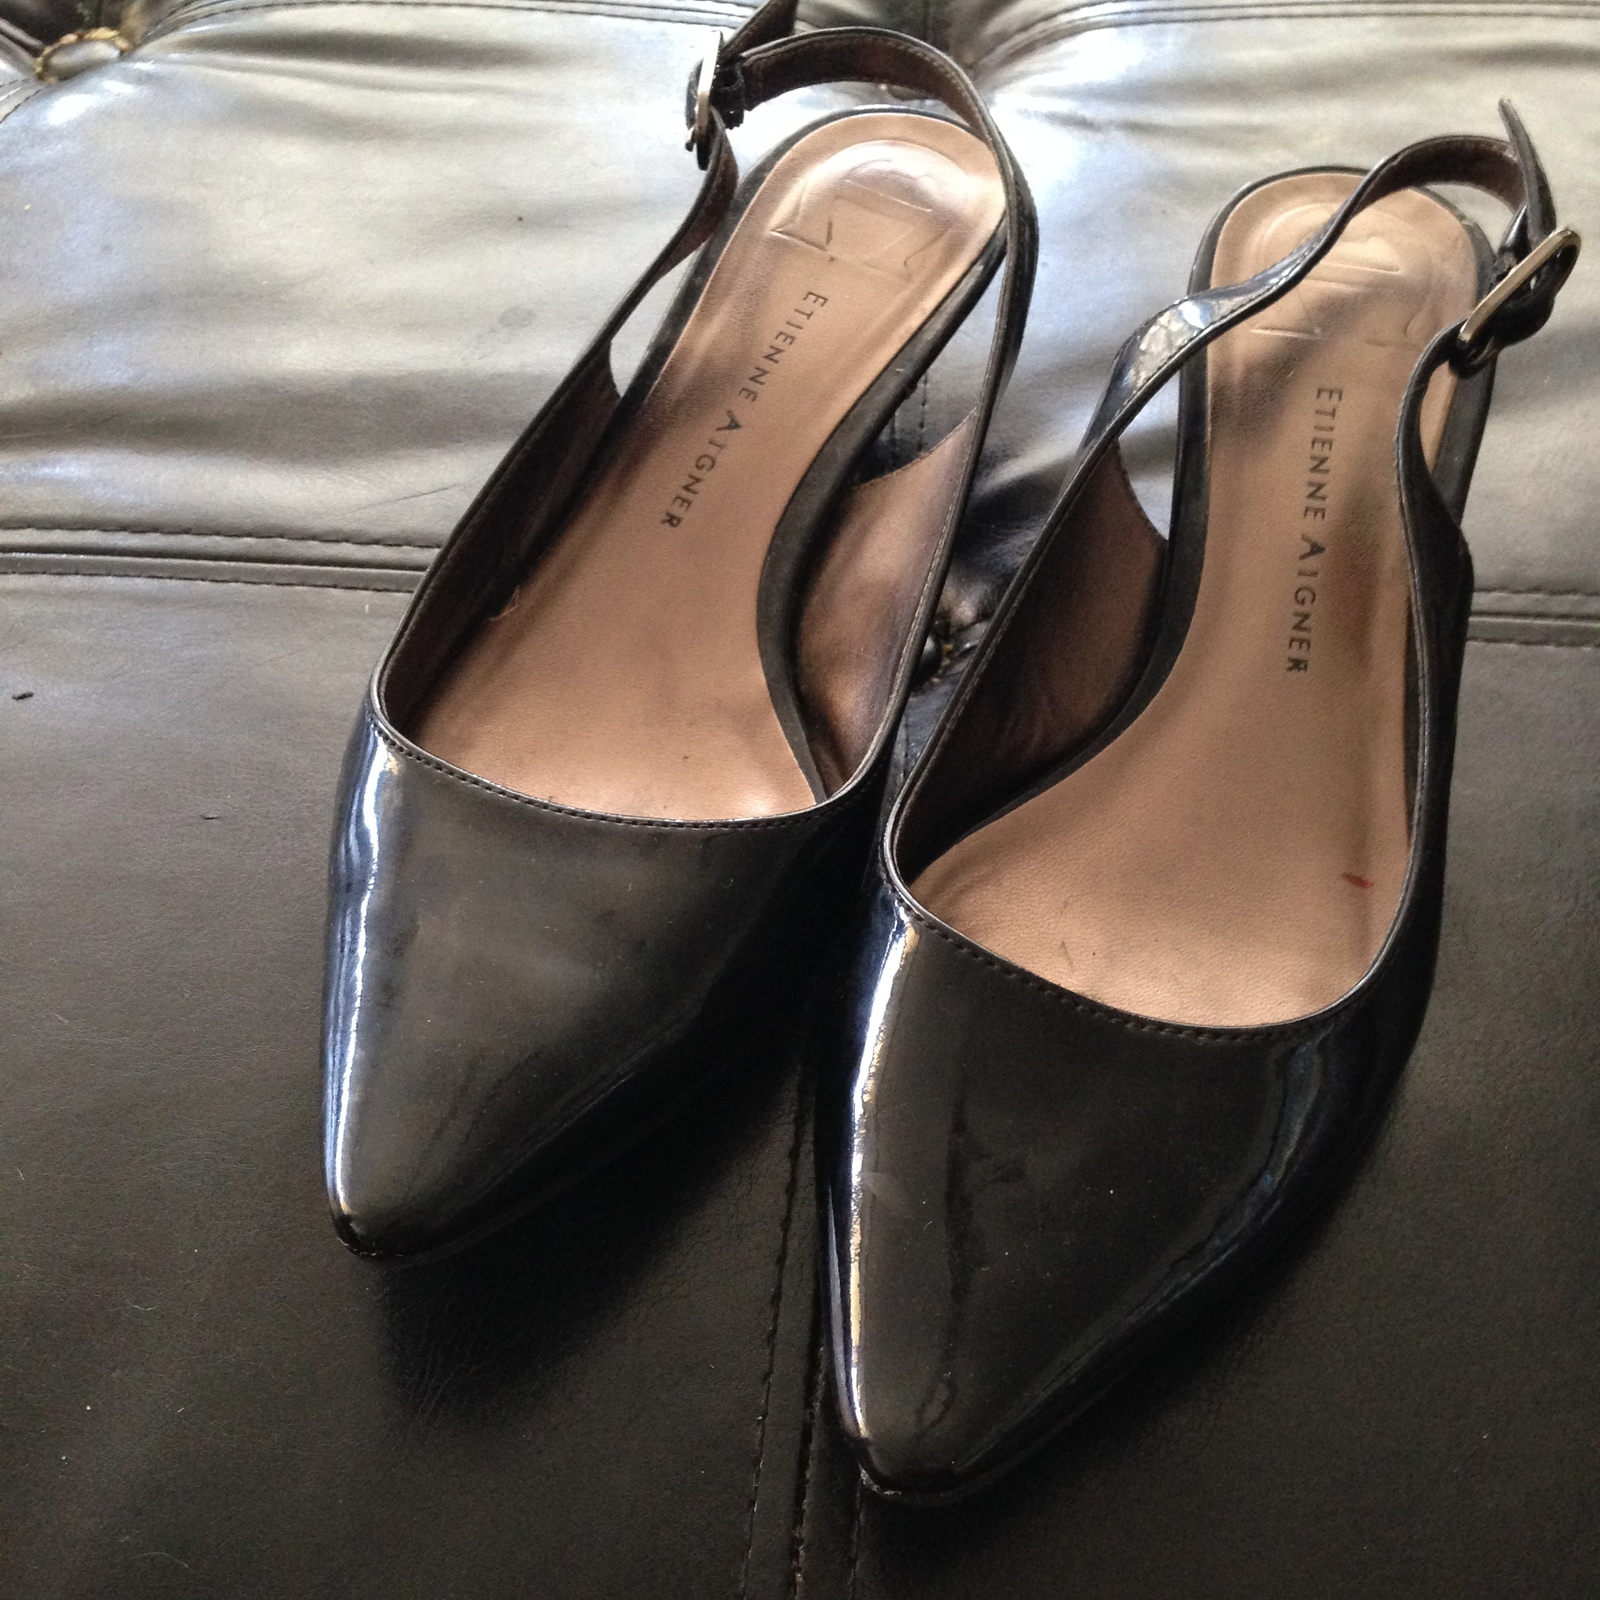 f3134545b0 Image. Image. Previous. women's black patent leather shoes heeled shoes size  8 by Etienne Aigner beautif